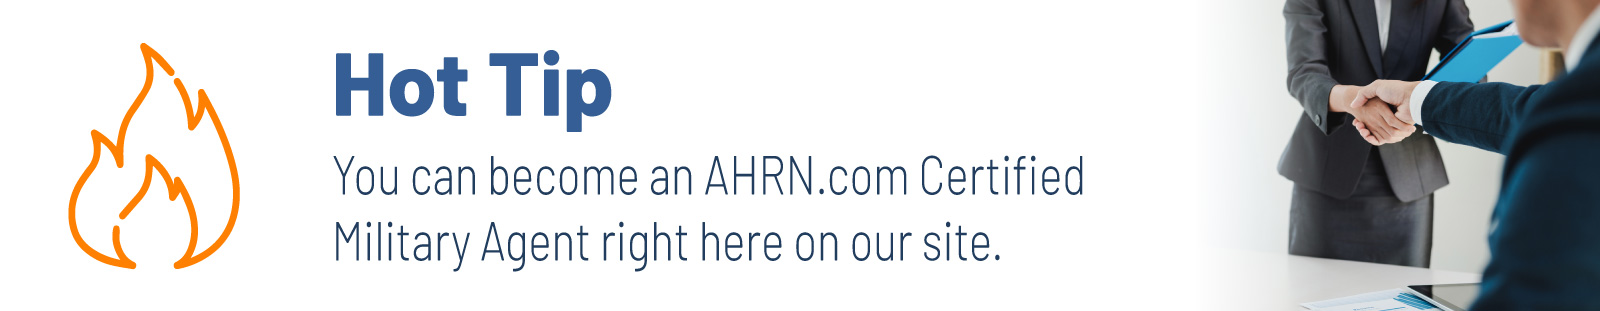 You can become an AHRN.com Certified Military Agent right here on our site.